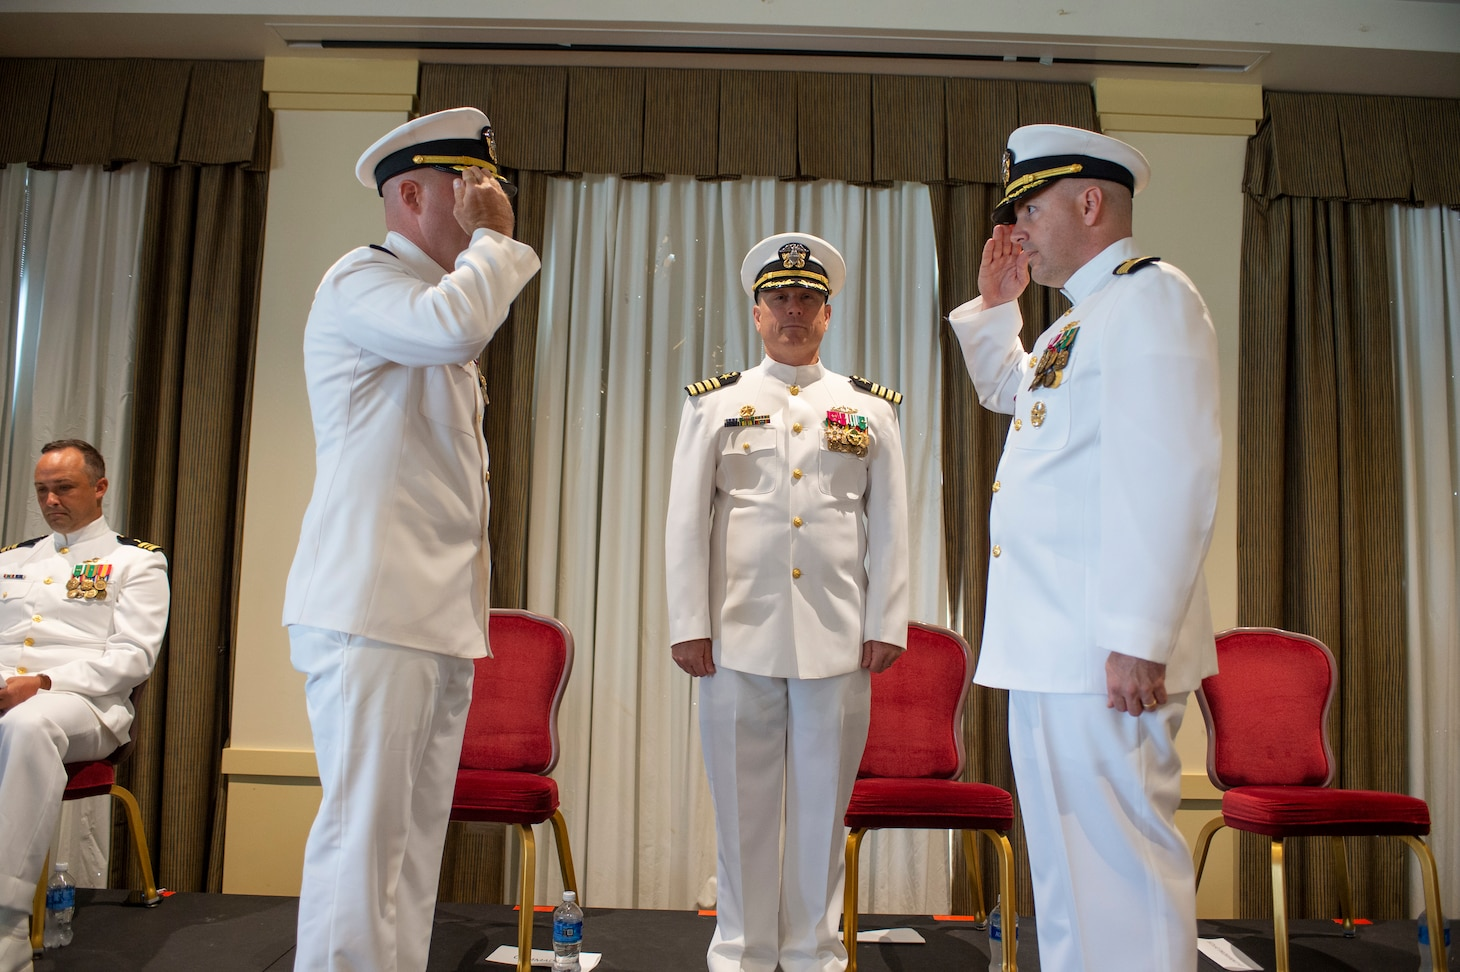 Cmdr. Jon Quimby, left, relieves Capt. Michael Delaney as commanding officer of the Virginia-class fast-attack submarine Pre-Commissioning Unit (PCU) Montana (SSN 794) during a change of command ceremony at Naval Station Norfolk, July 16, 2021.